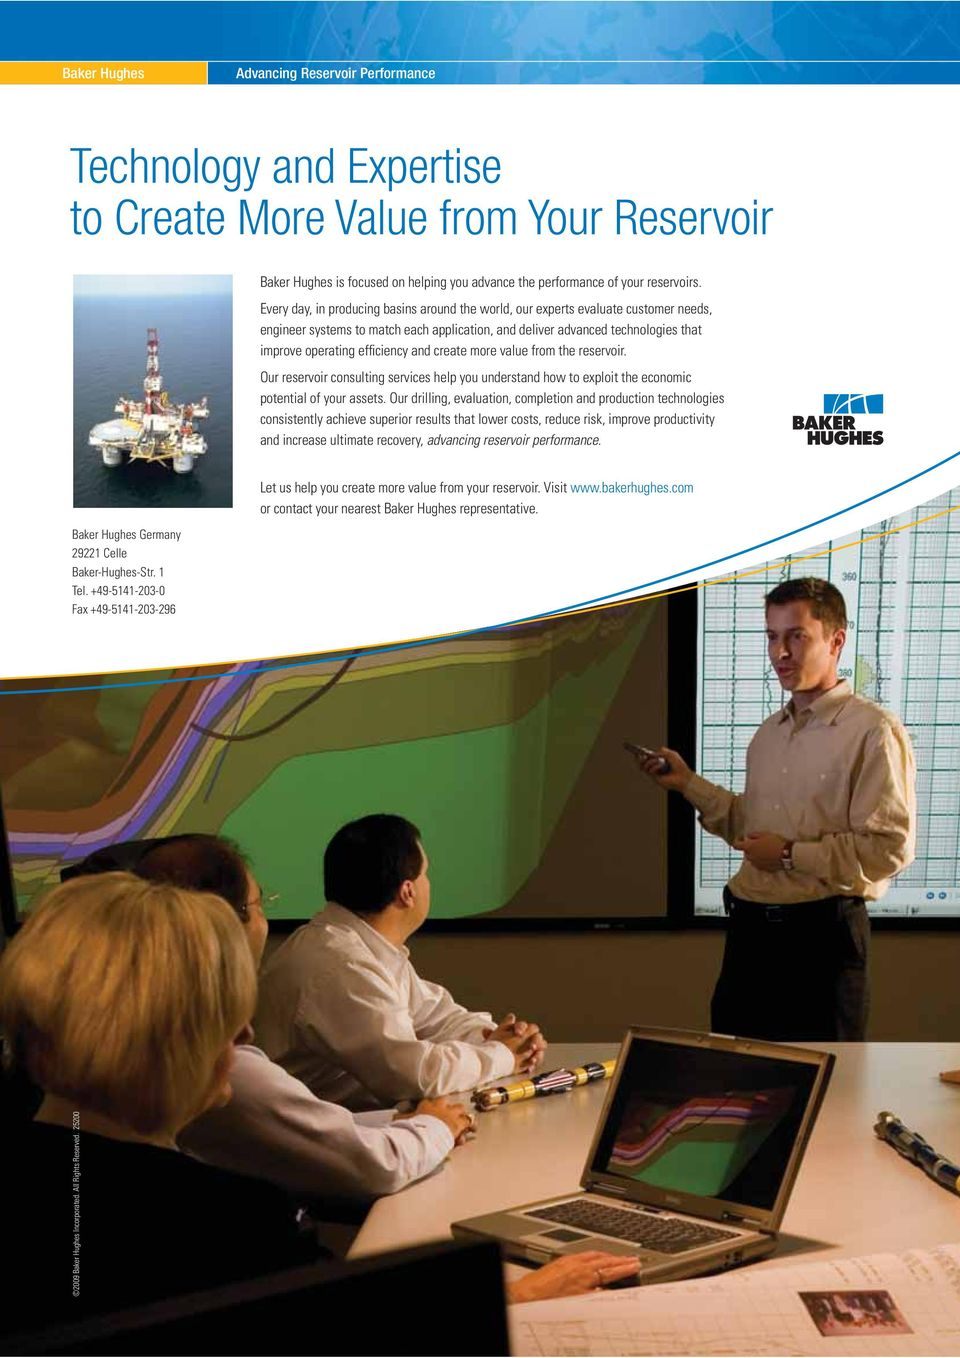 and create more value from the reservoir. Our reservoir consulting services help you understand how to exploit the economic potential of your assets.